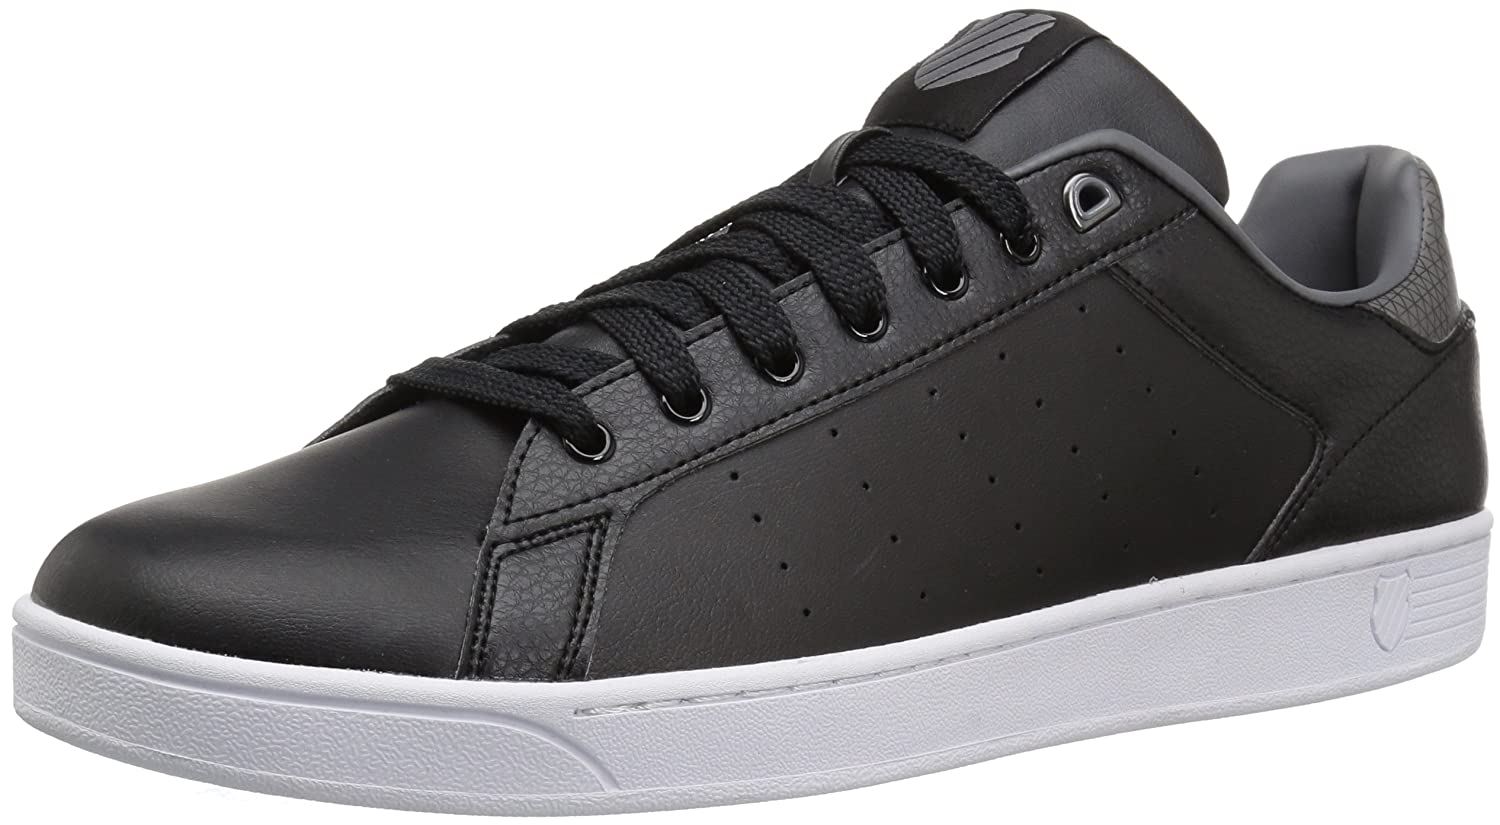 KSwiss para Clean Court CMF Zapatillas para KSwiss Hombre Color Negro Navy/Negro dadae0